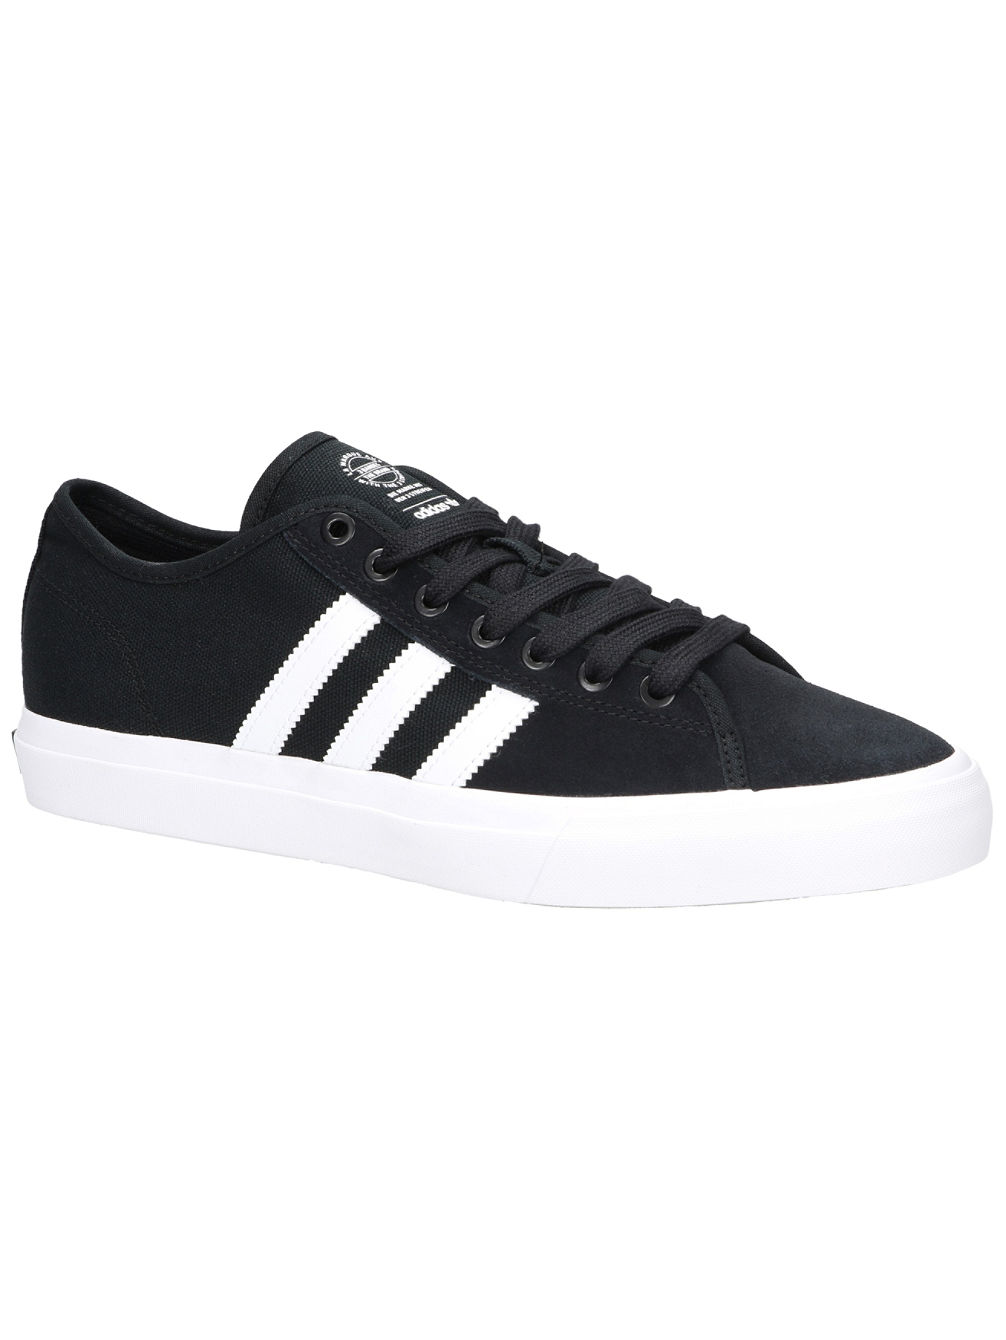 Matchcourt RX Skate Shoes